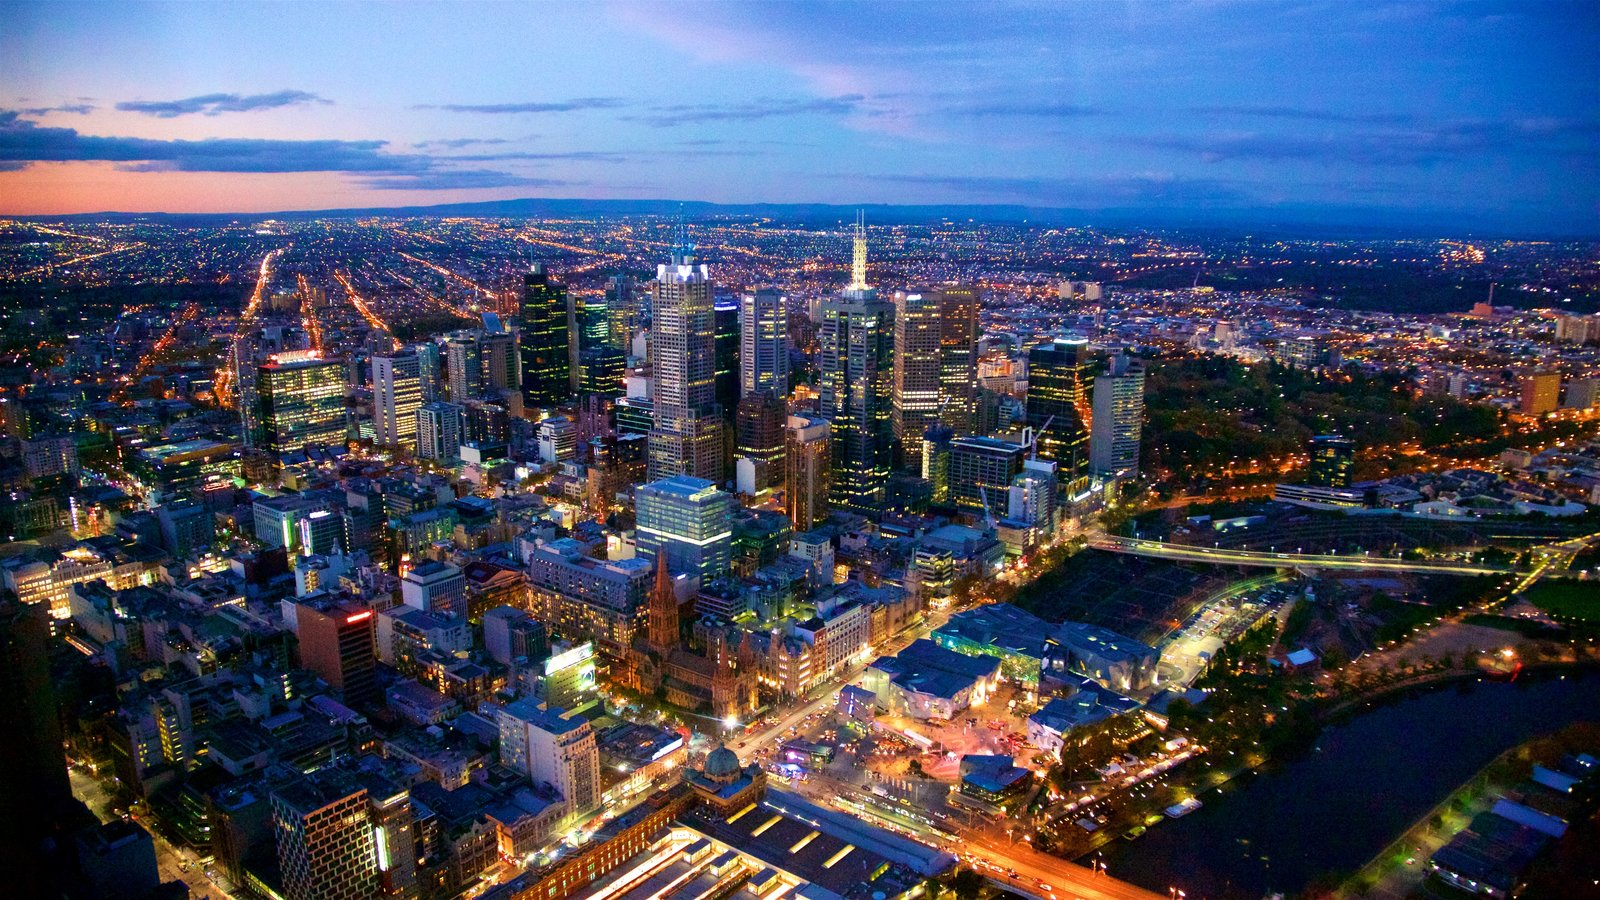 Melbourne showing a city, a sunset and landscape views